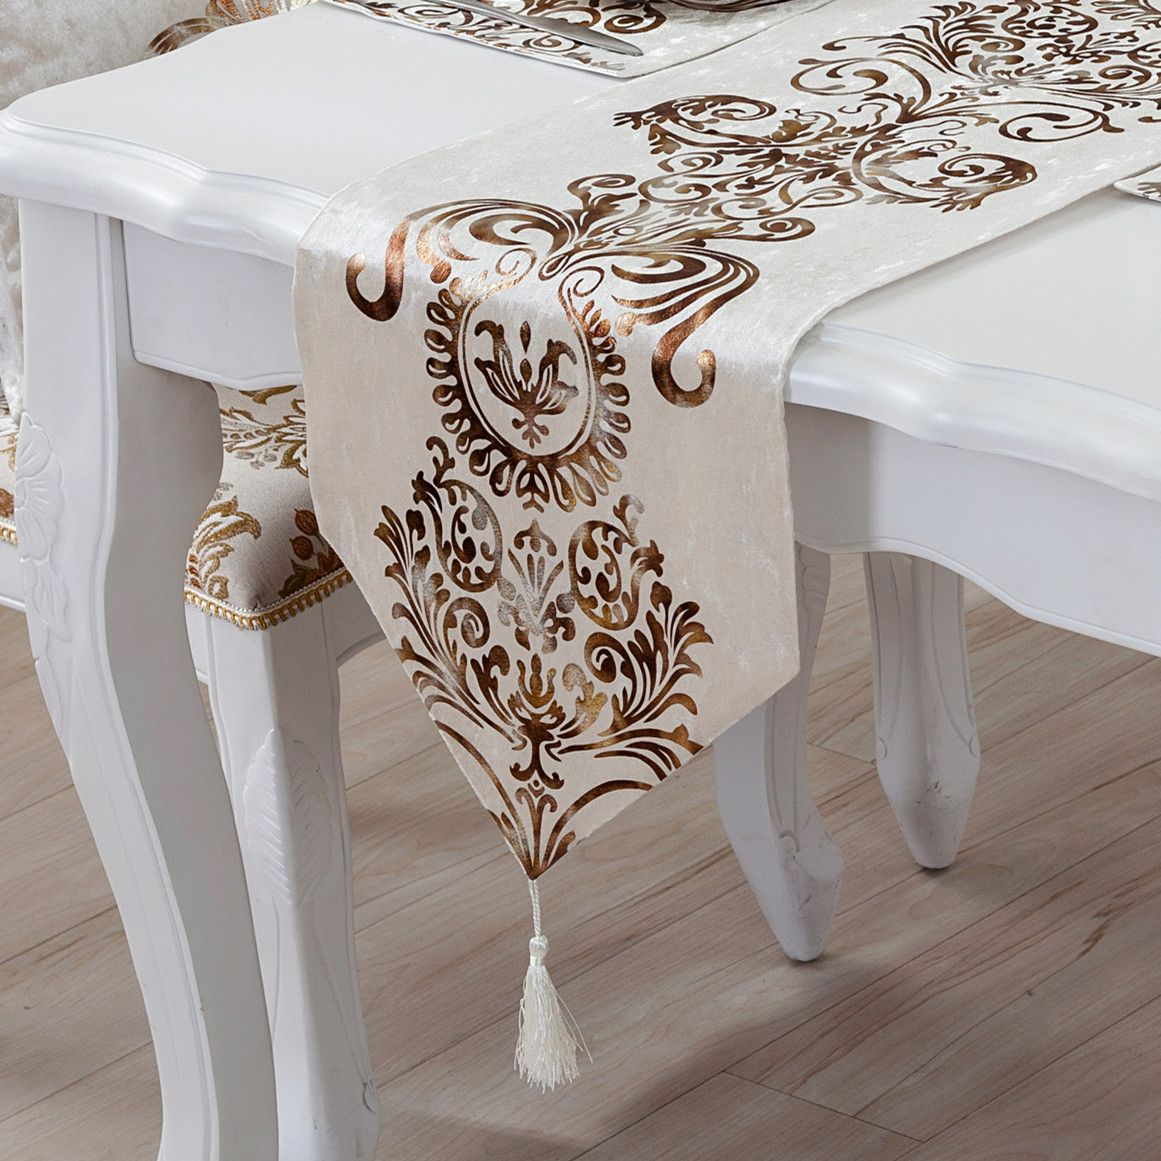 Multi Sizes Simple And Stylish Modern Luxury Table Runner European Neo Classical Bed End Cloths Tablec Embroidered Table Runner Luxury Table Linen Table Runner [ 1161 x 1161 Pixel ]